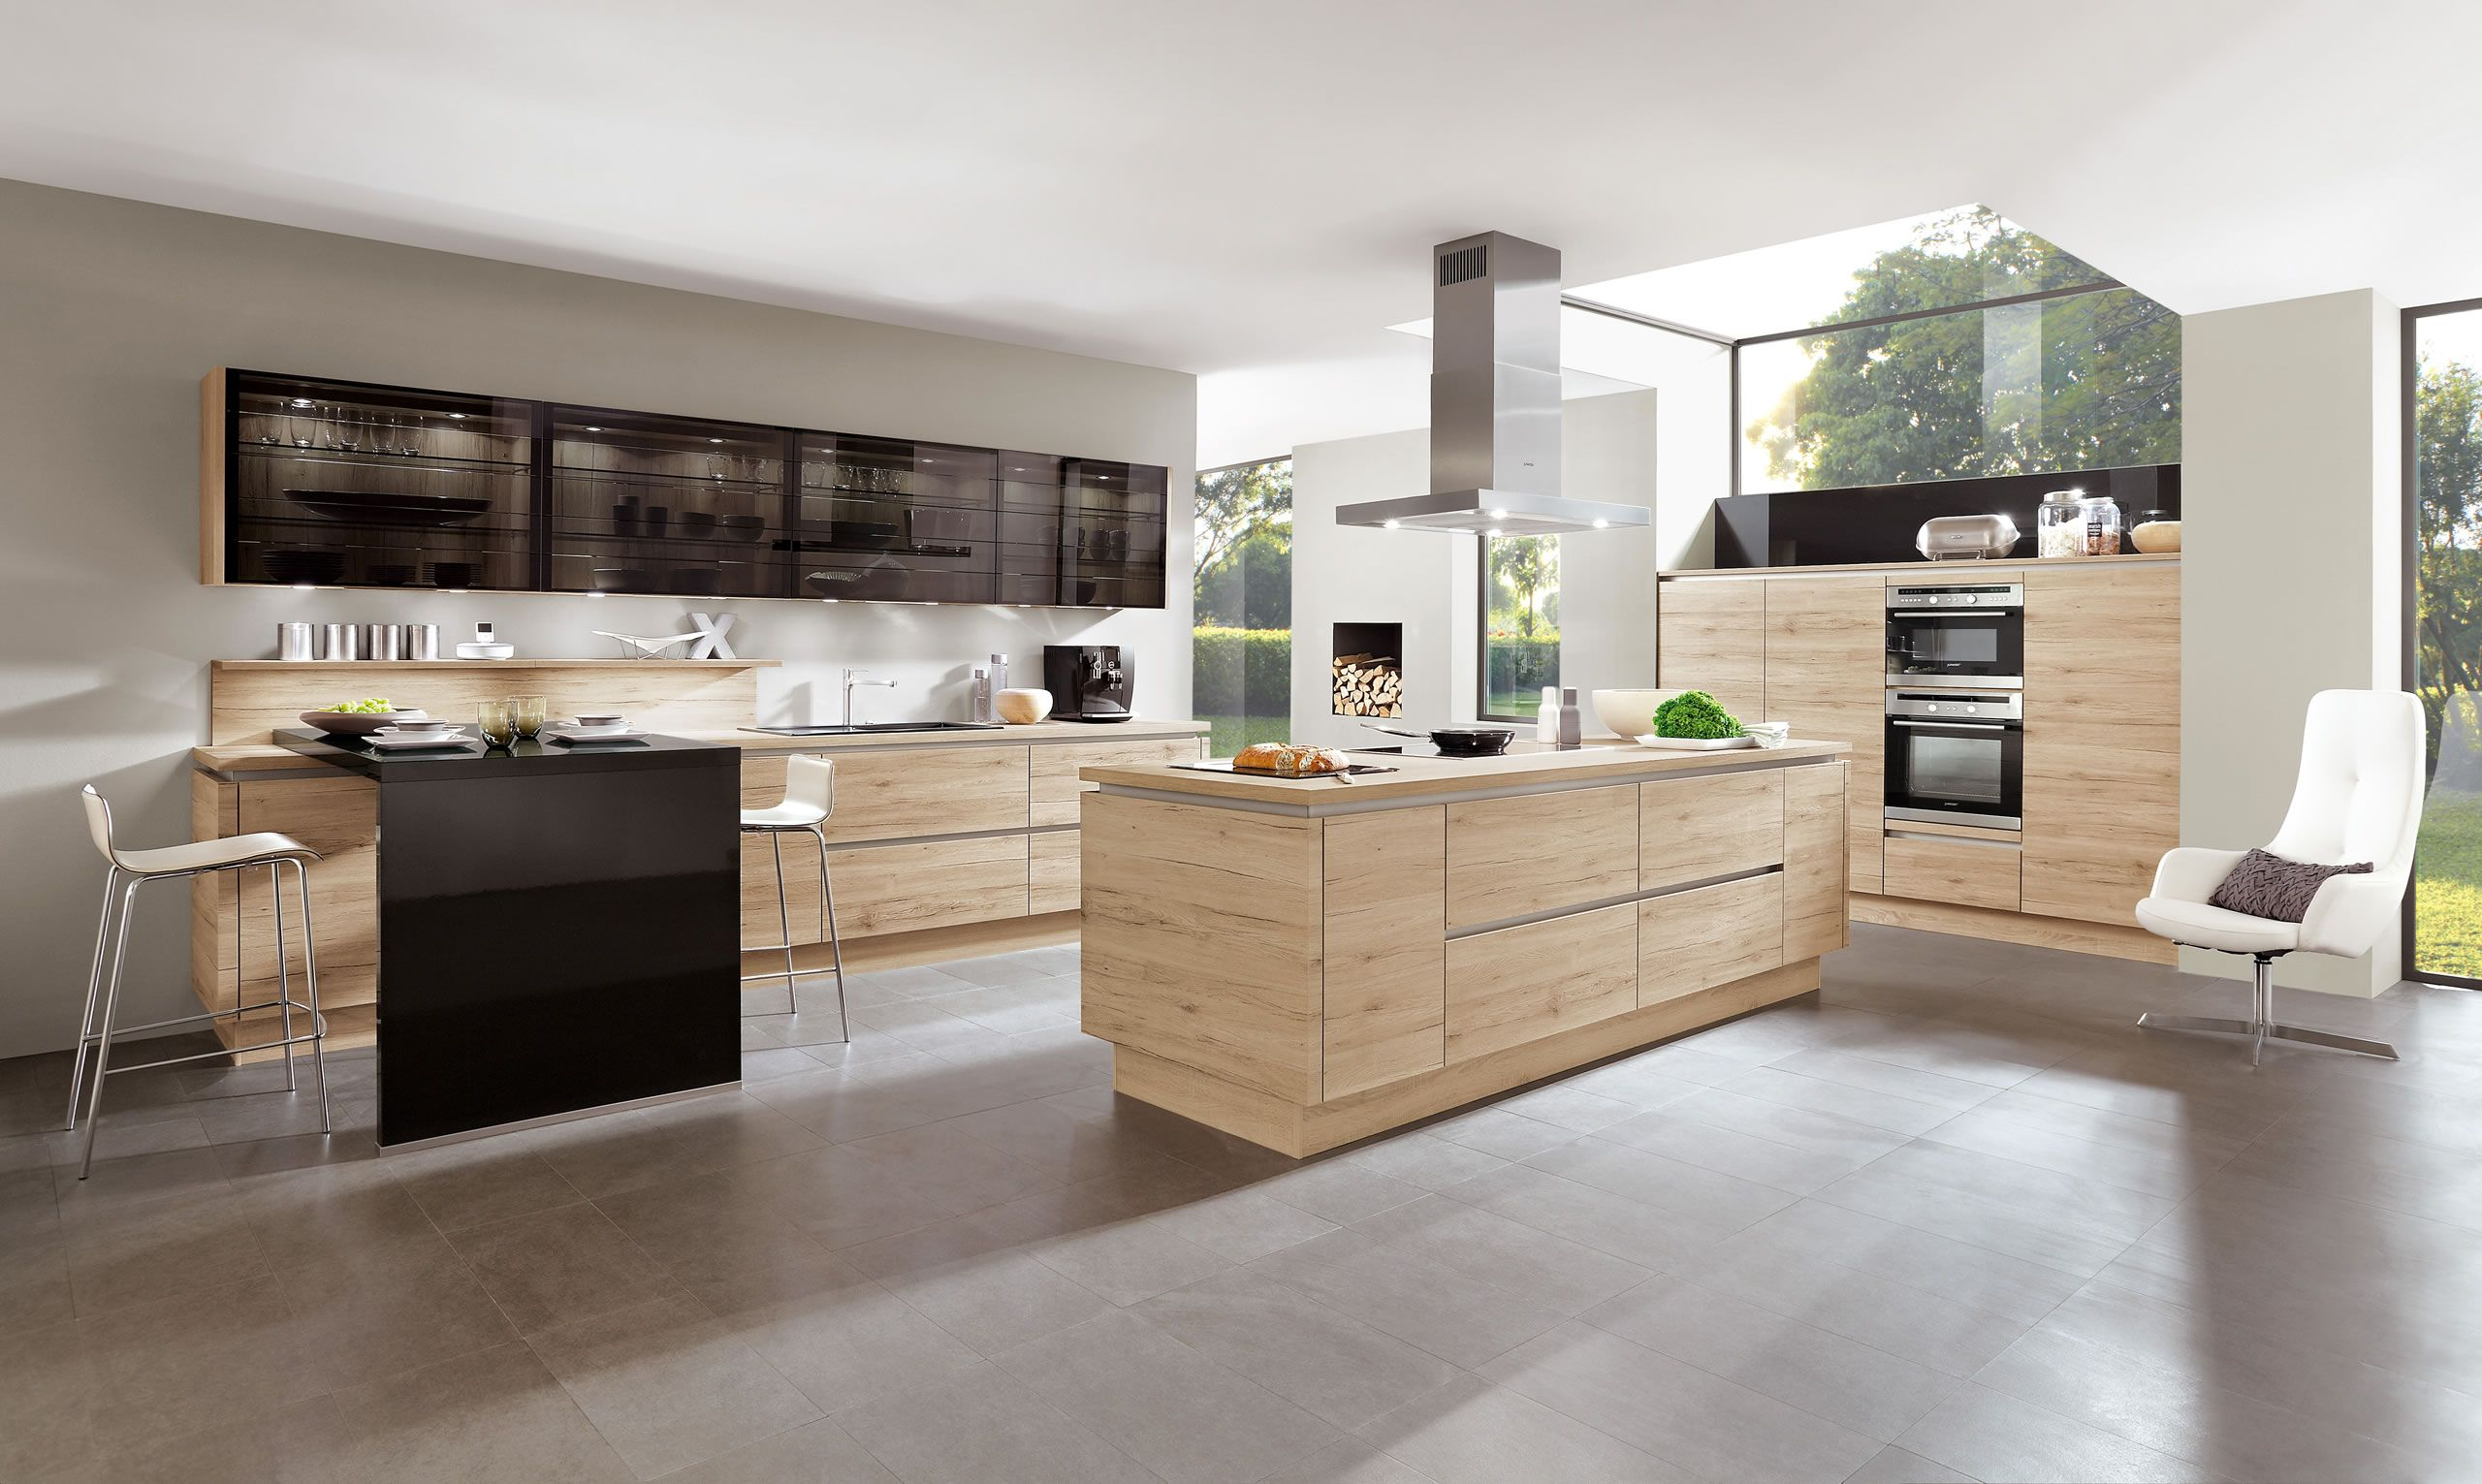 Marvelous German products are eminent for their quality and as such Nobilia follows this trend Nobilia kitchens Pinterest Kitchens